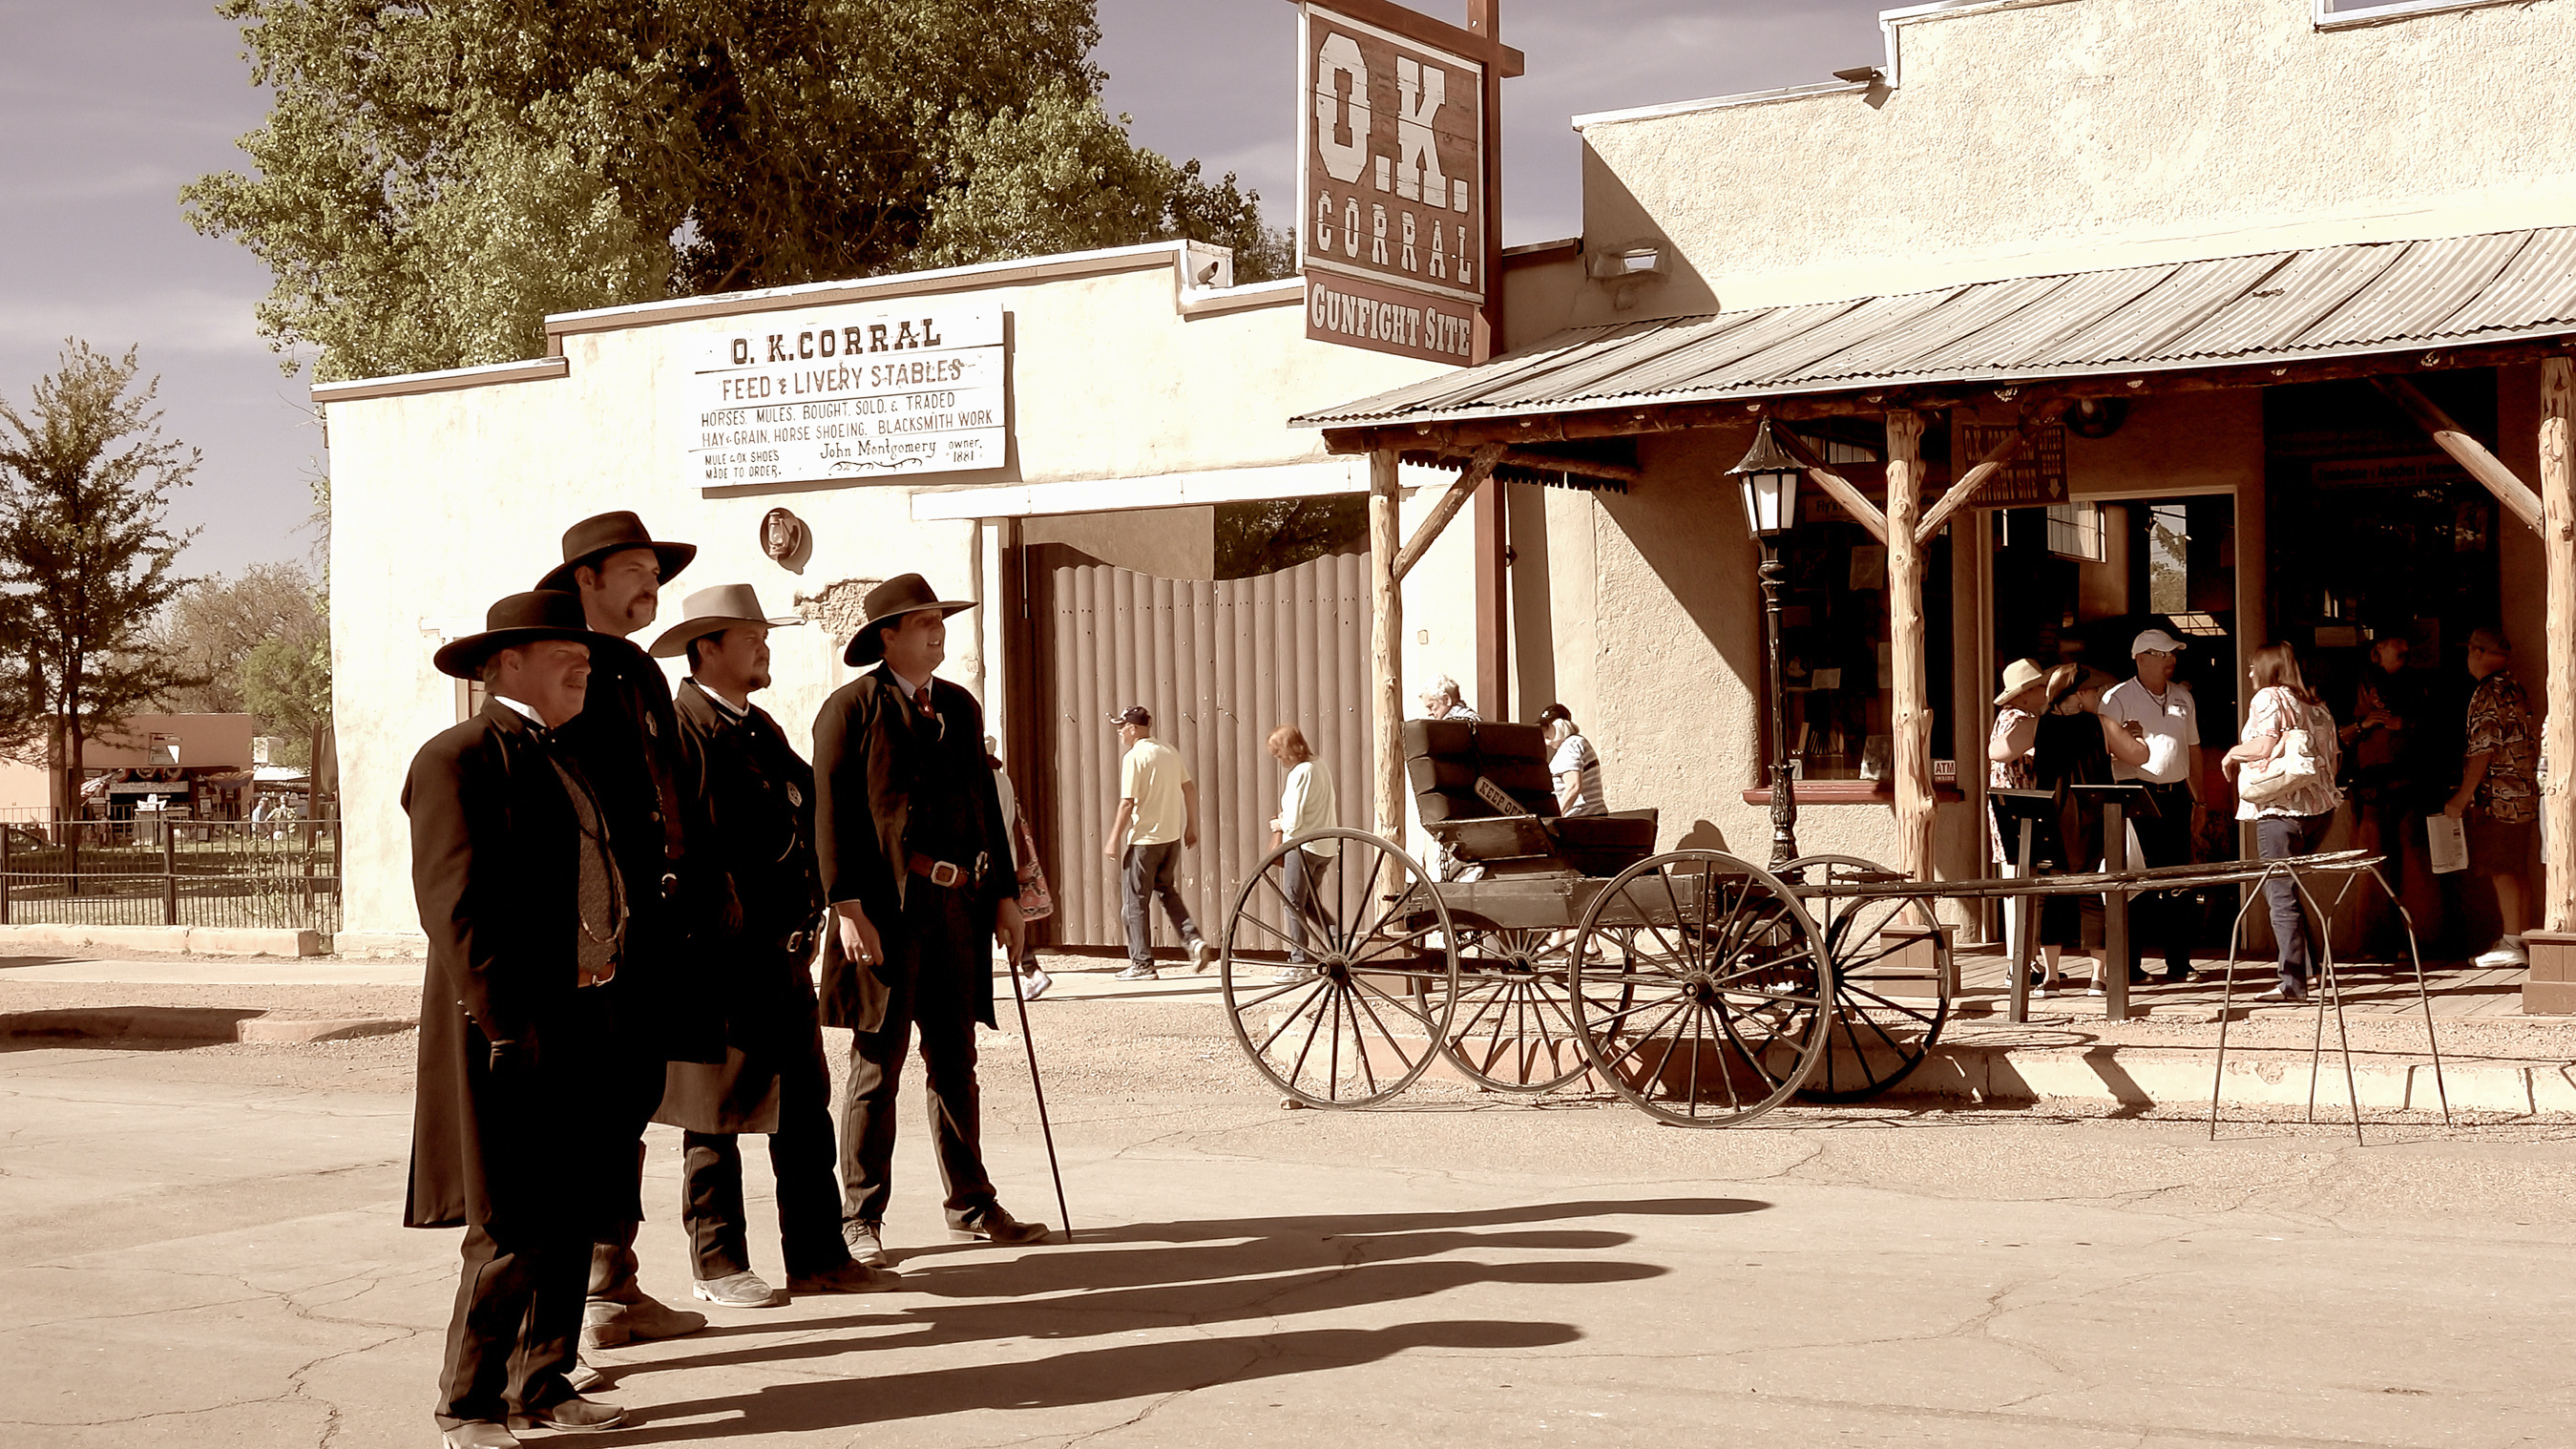 Wyatt Earp facts